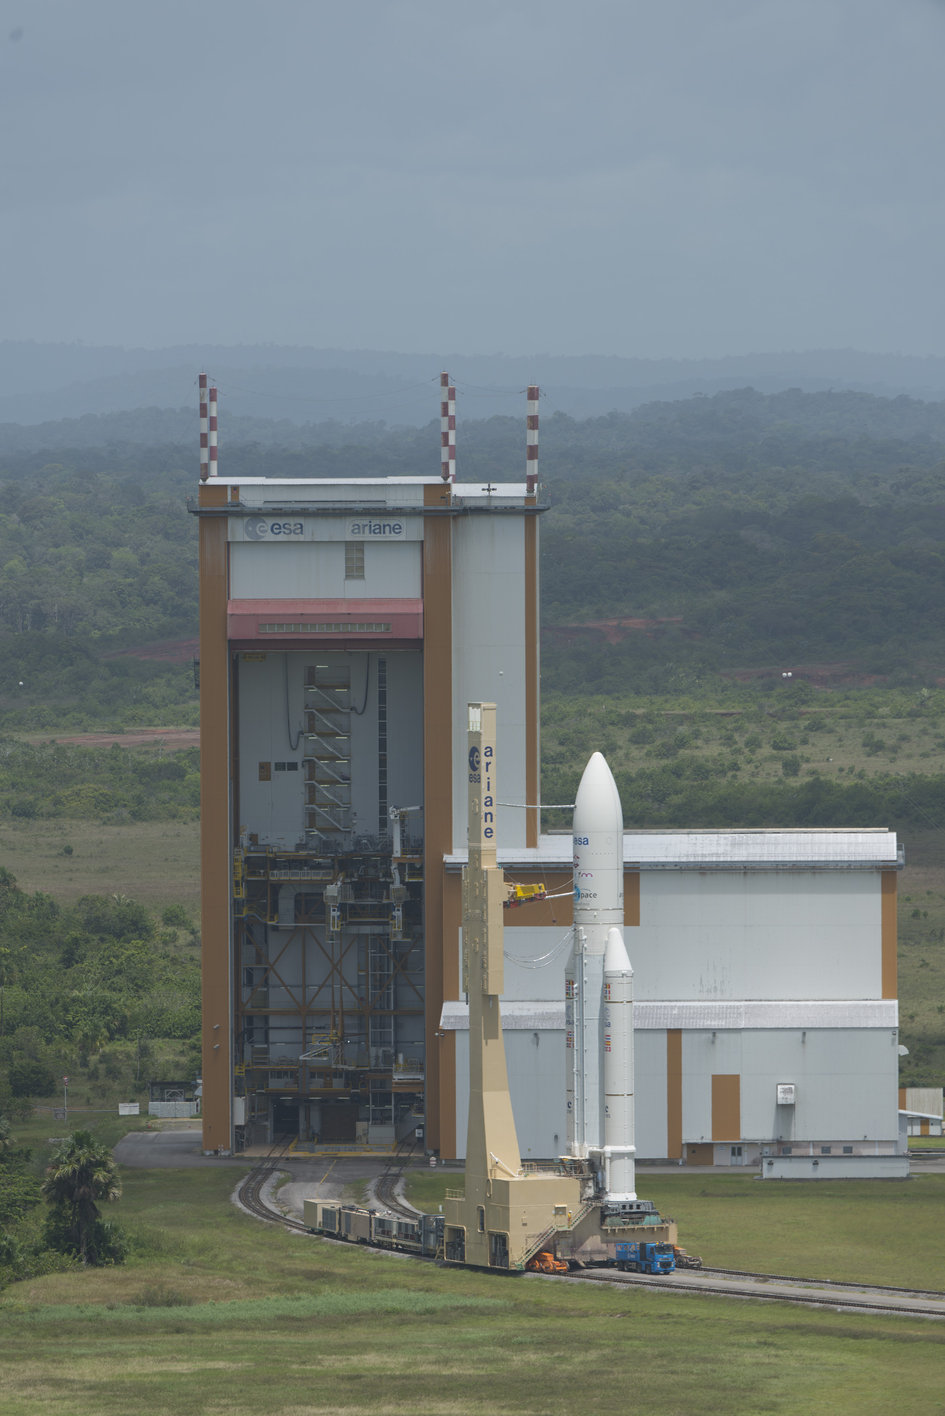 Transfer of Ariane 5 VA 213